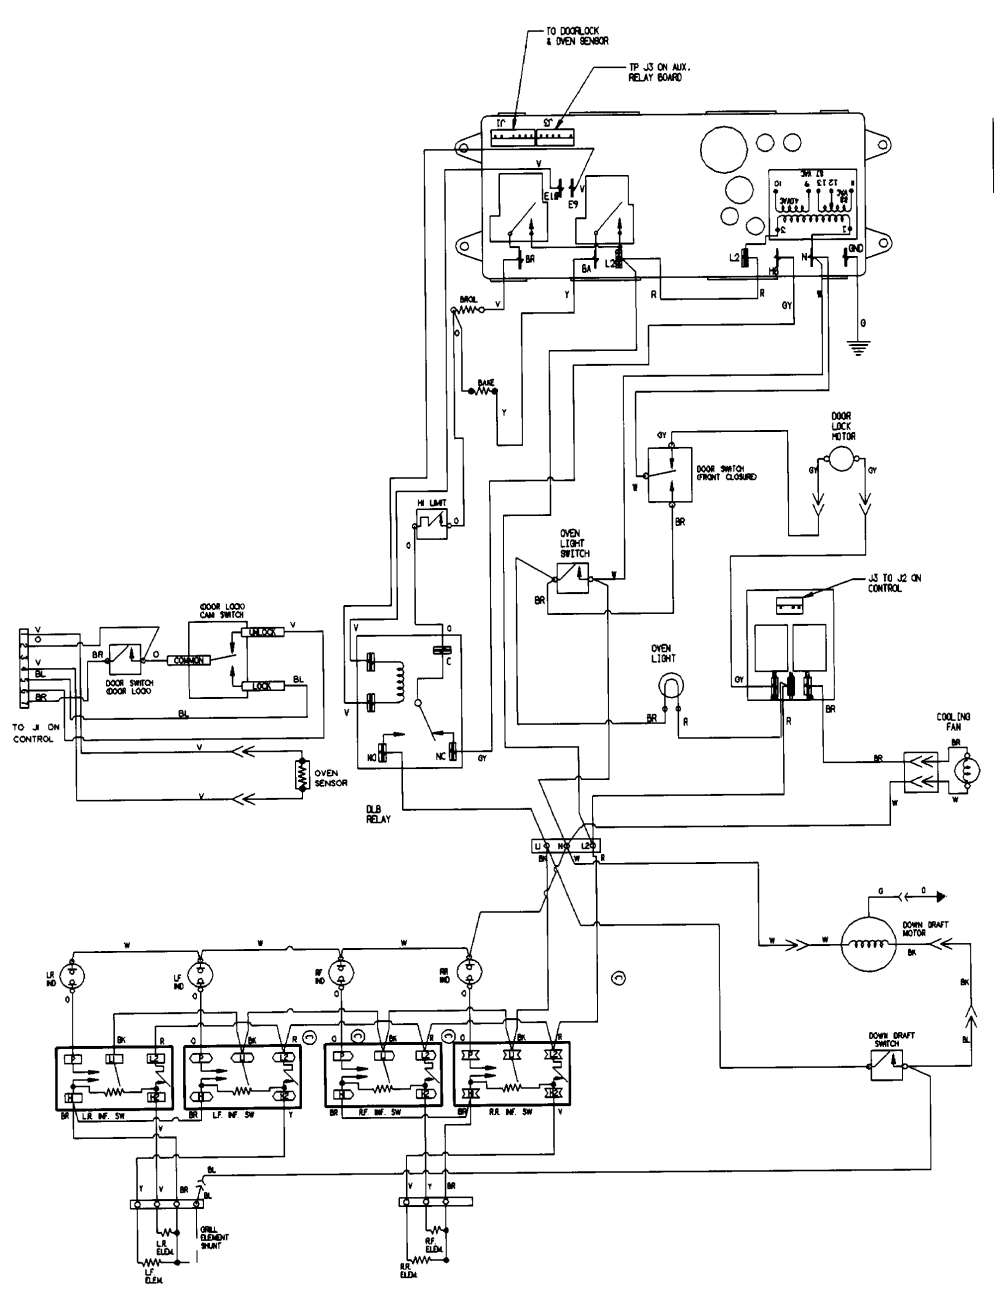 medium resolution of wiring oven top wiring diagram pass stove top wiring diagram wiring diagram data today wiring oven